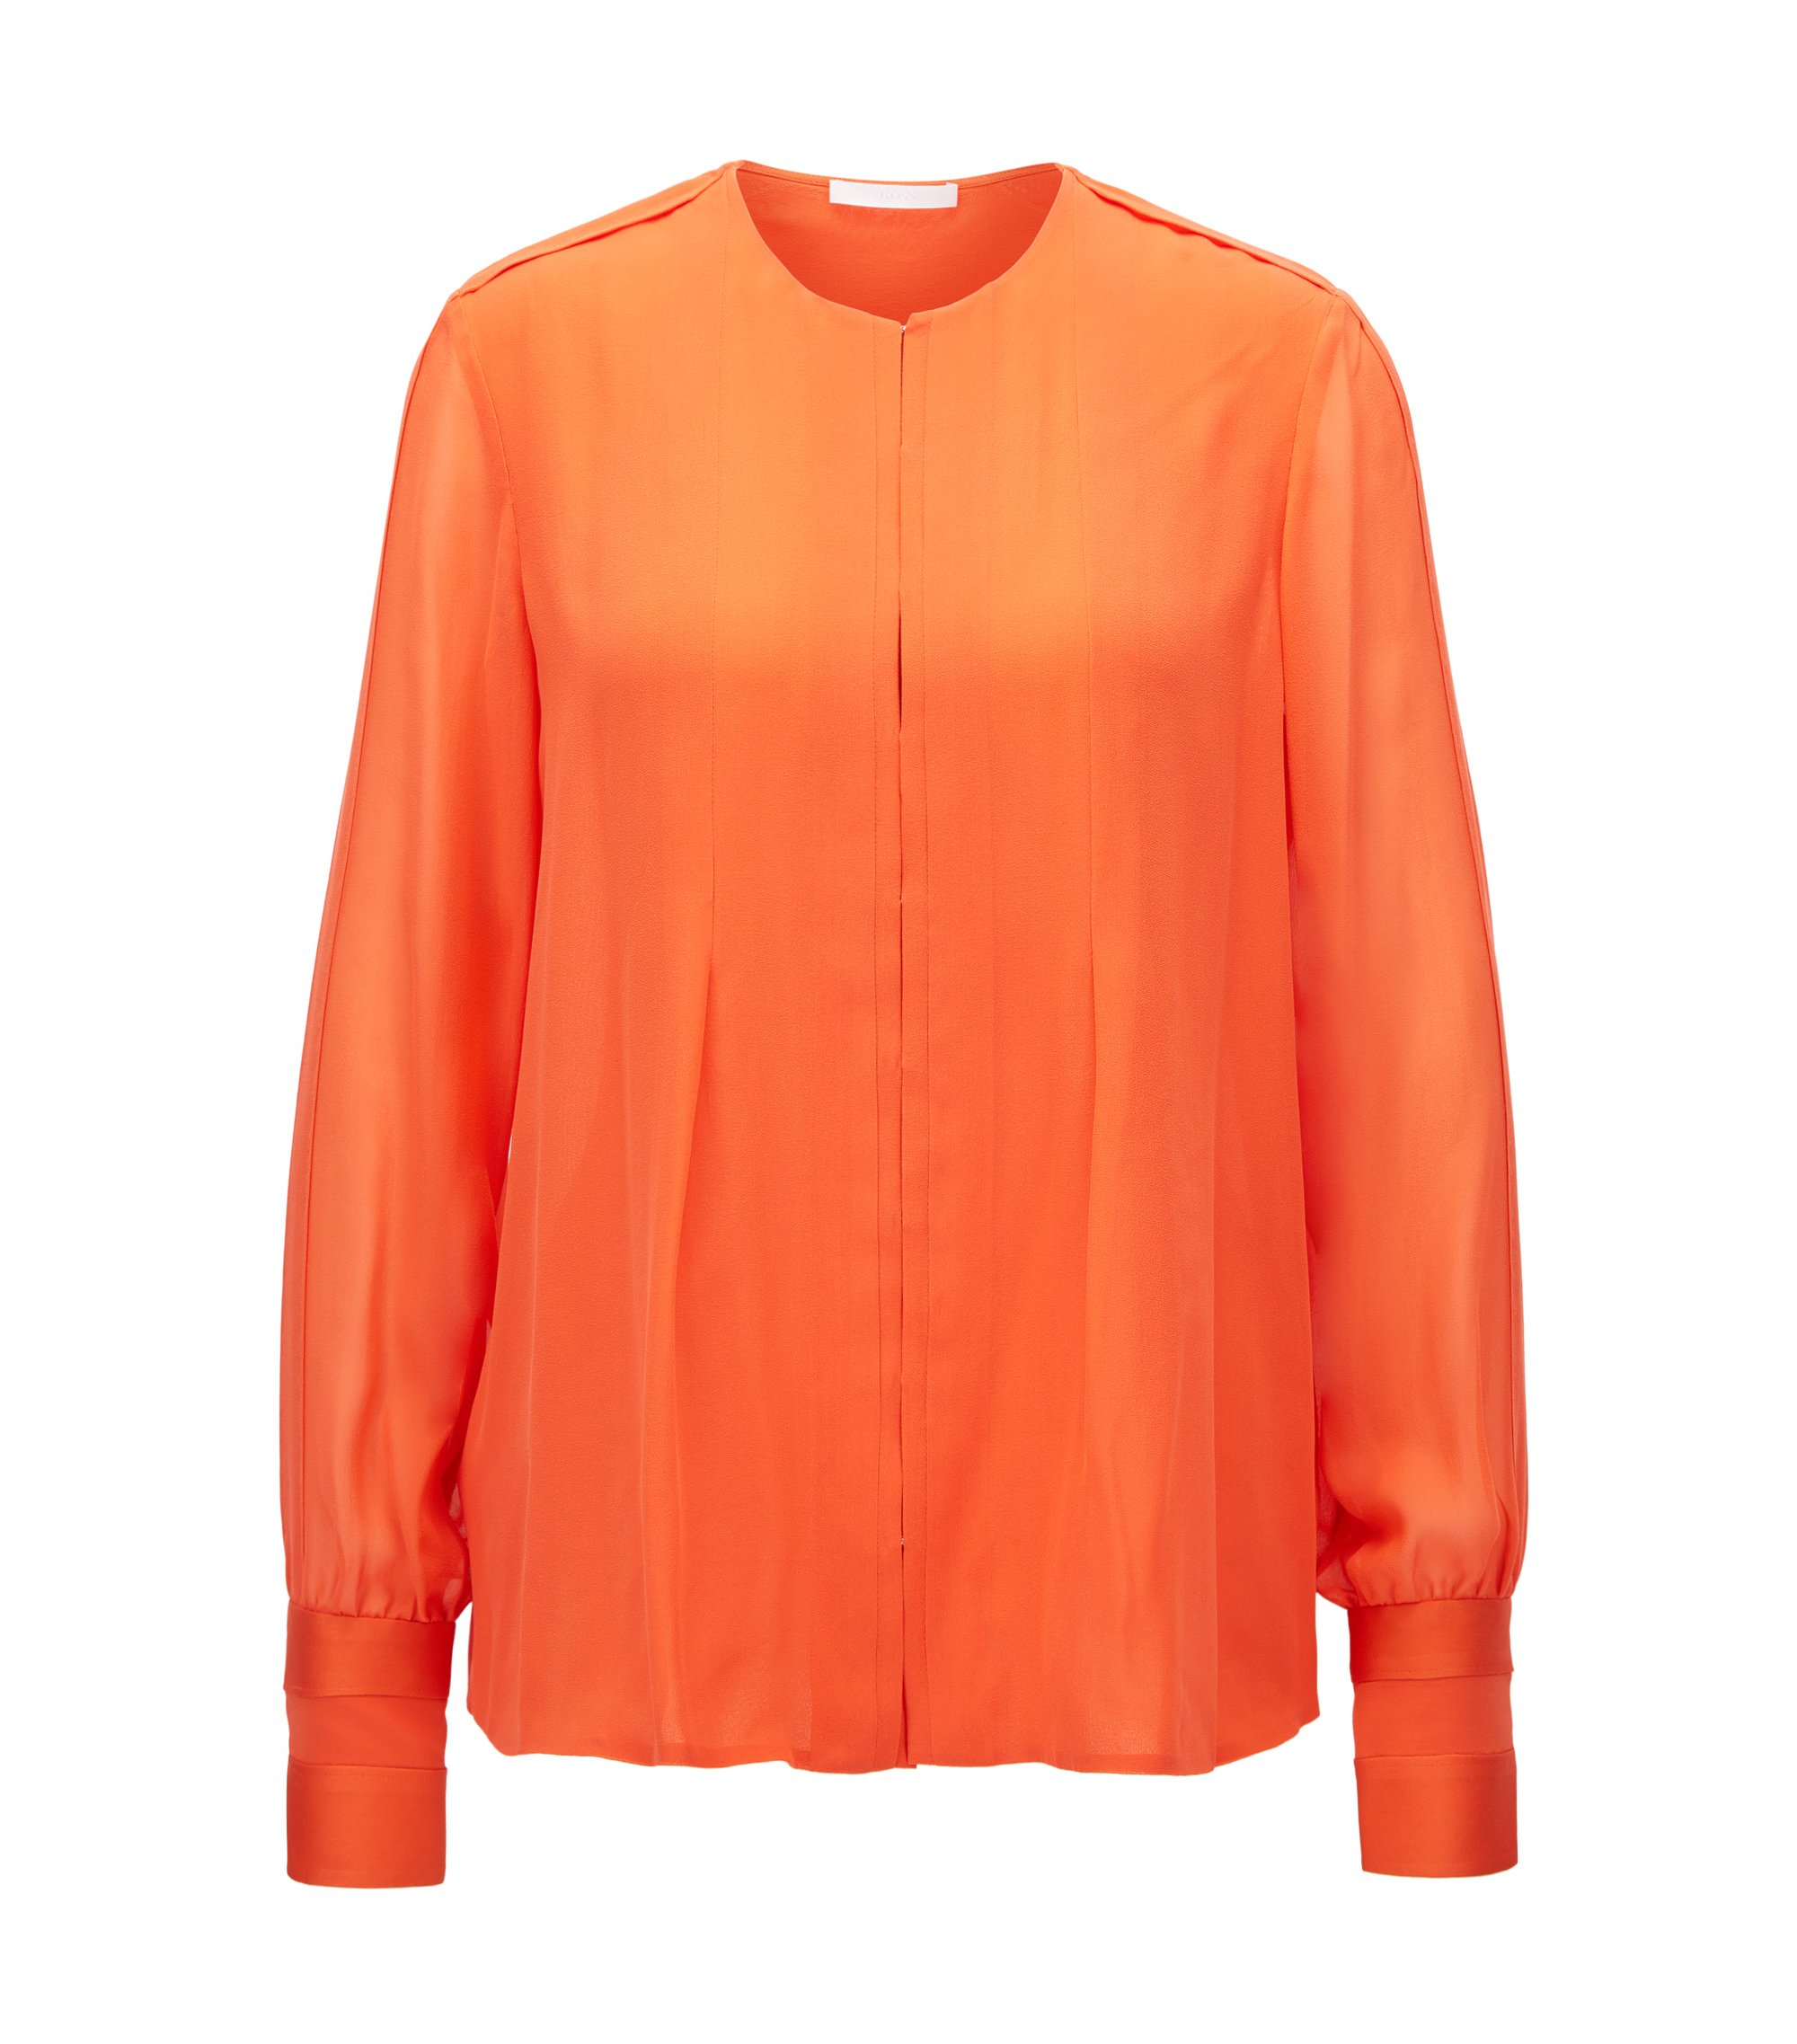 Regular-Fit Seidenbluse aus der Gallery Kollektion, Orange